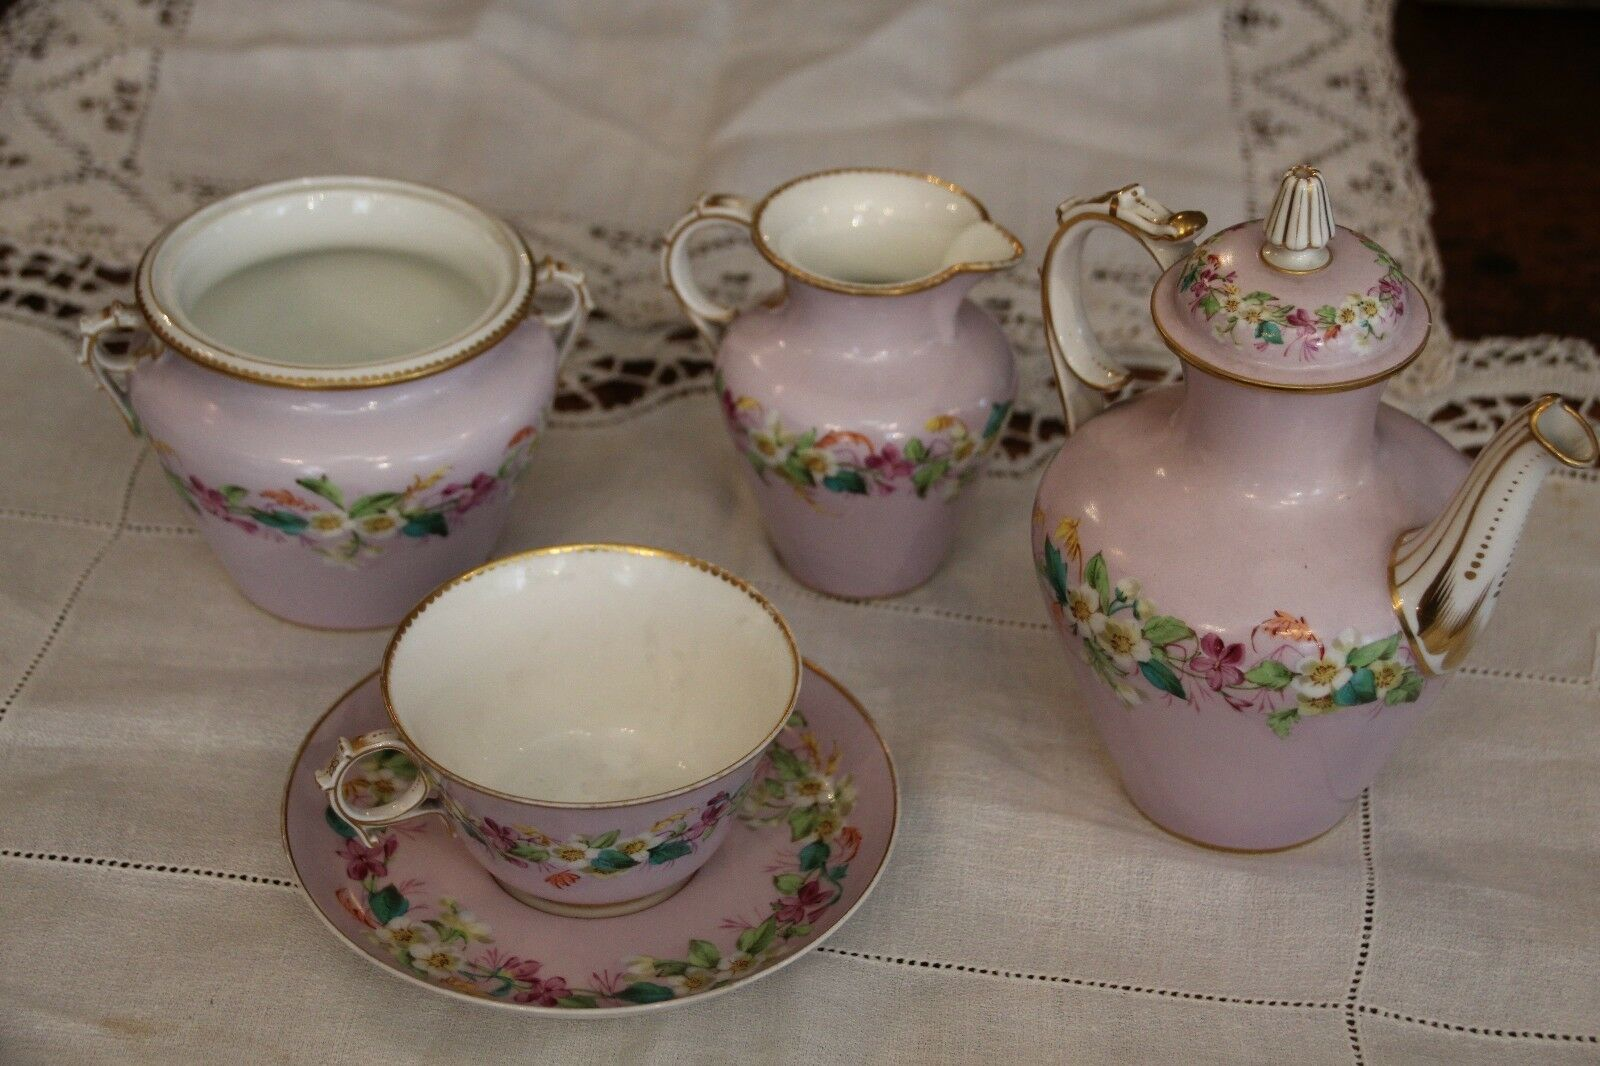 rose Sevres porcelain Tea set French porcelain tea set Porcelain tea set egoist